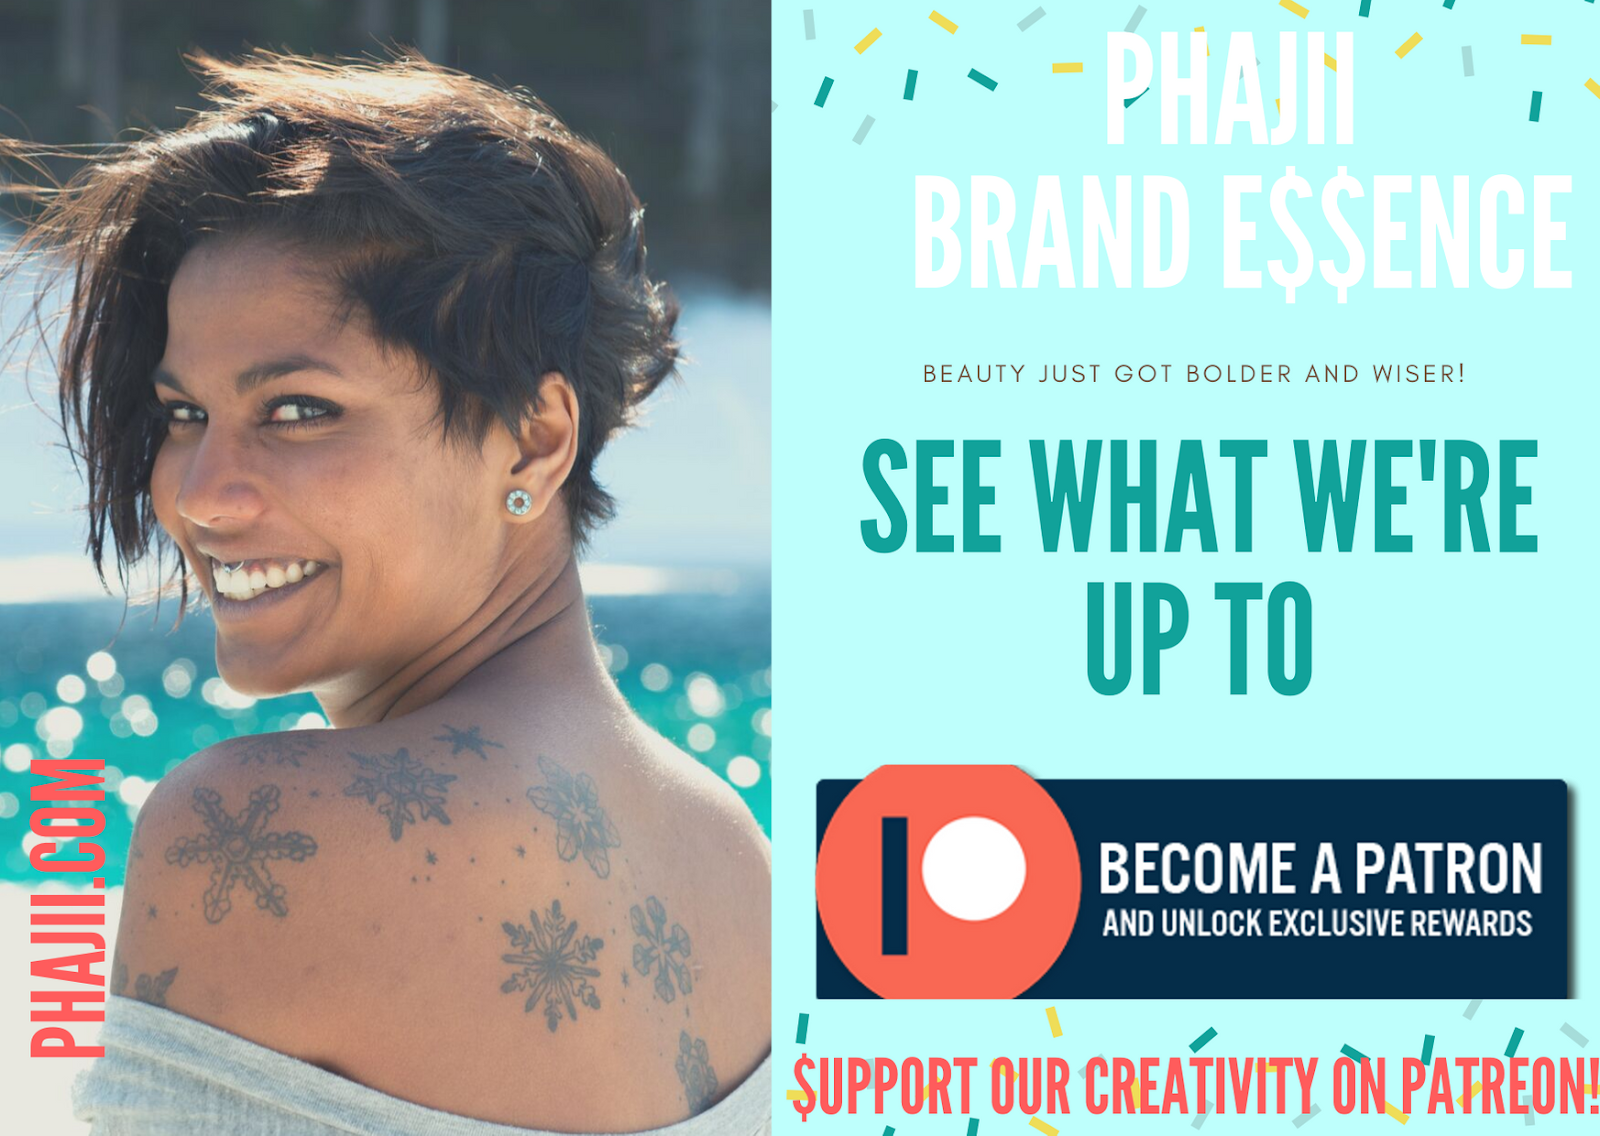 Beauty just got bolder and wiser!! Phajii Brand Essence